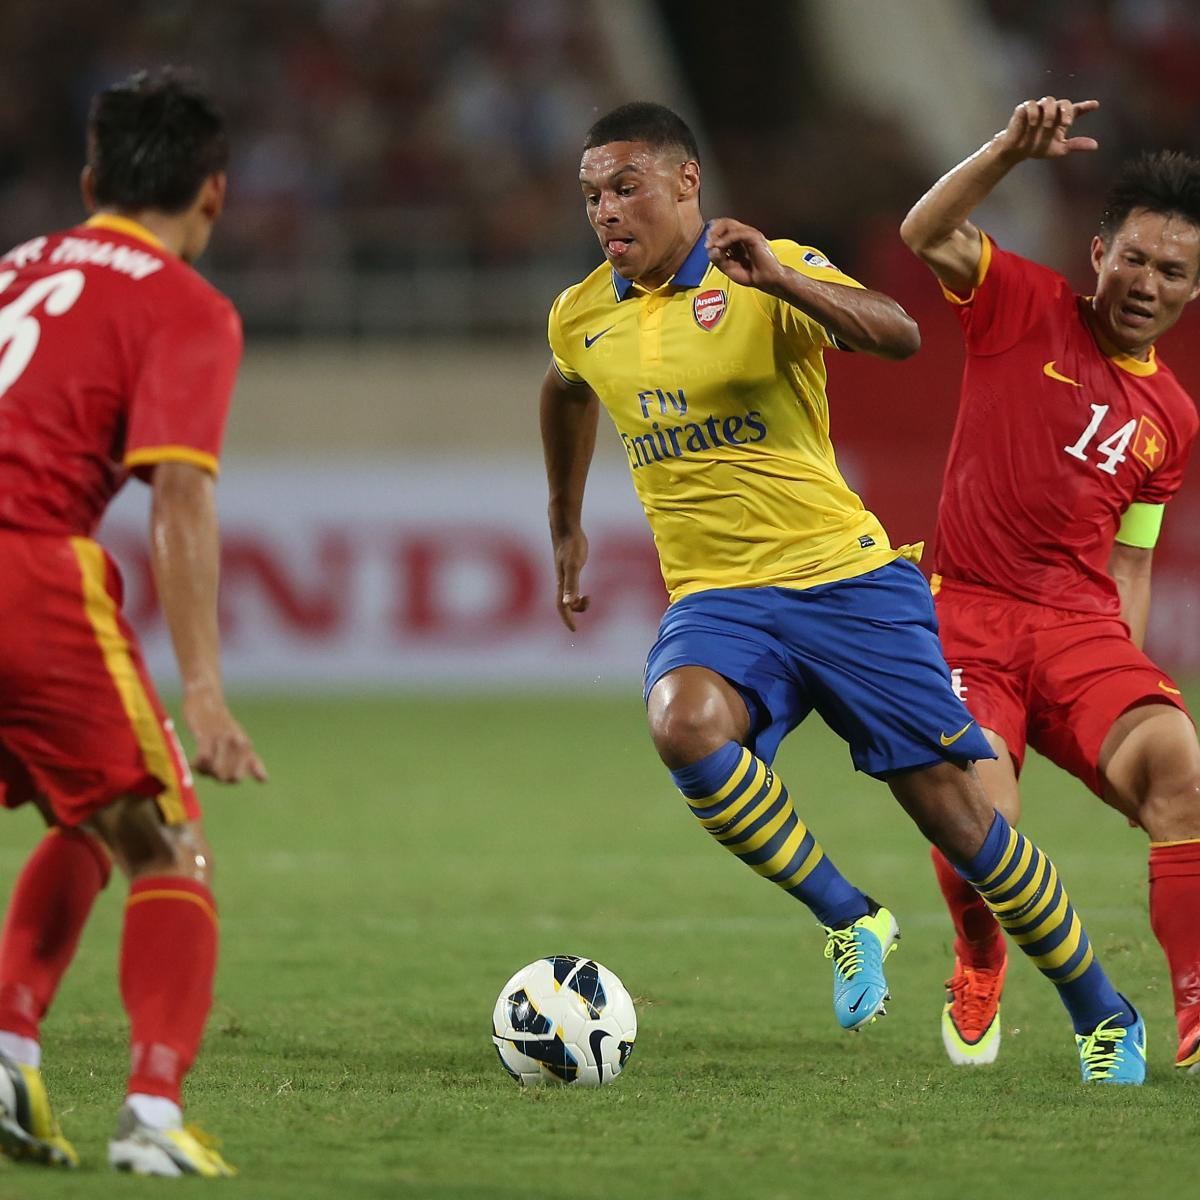 Epl Matches Live On Rcti Indonesia Tv Channel: Arsenal Vs. Nagoya Grampus: Date, Time, Live Stream, TV